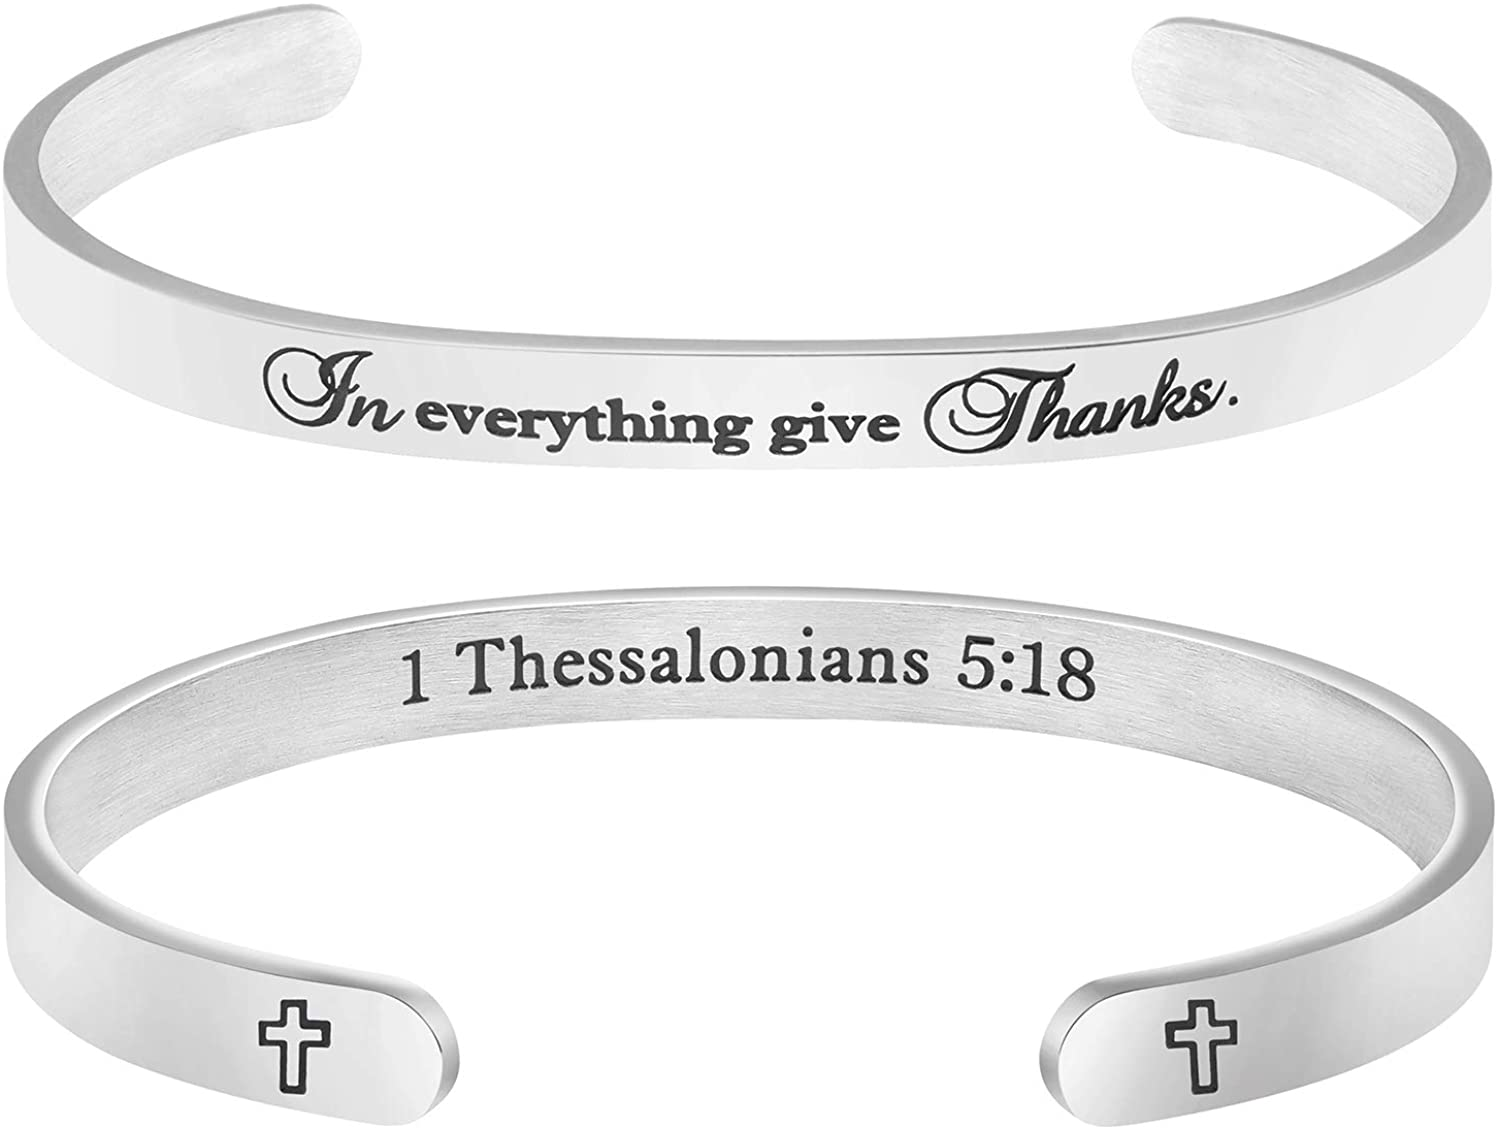 MEMGIFT Christian Bracelets for Women Inspirational Religious Gifts for Her Bible Verse Bapstism Jewelry Cuff Bangle